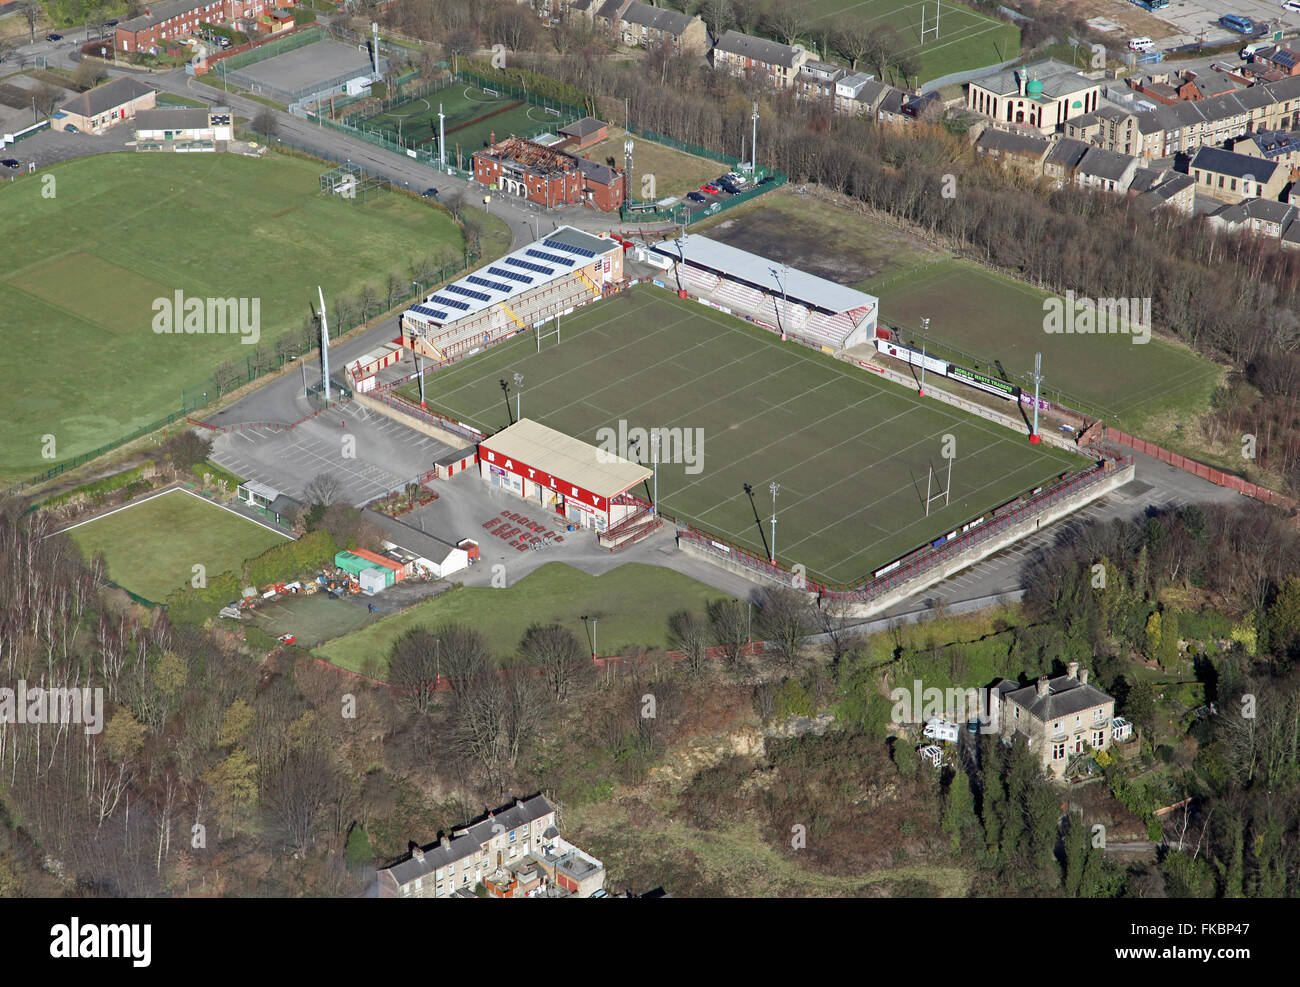 aerial view of Batley Rugby League ground near Dewsbury, West Yorkshire, UK - Stock Image